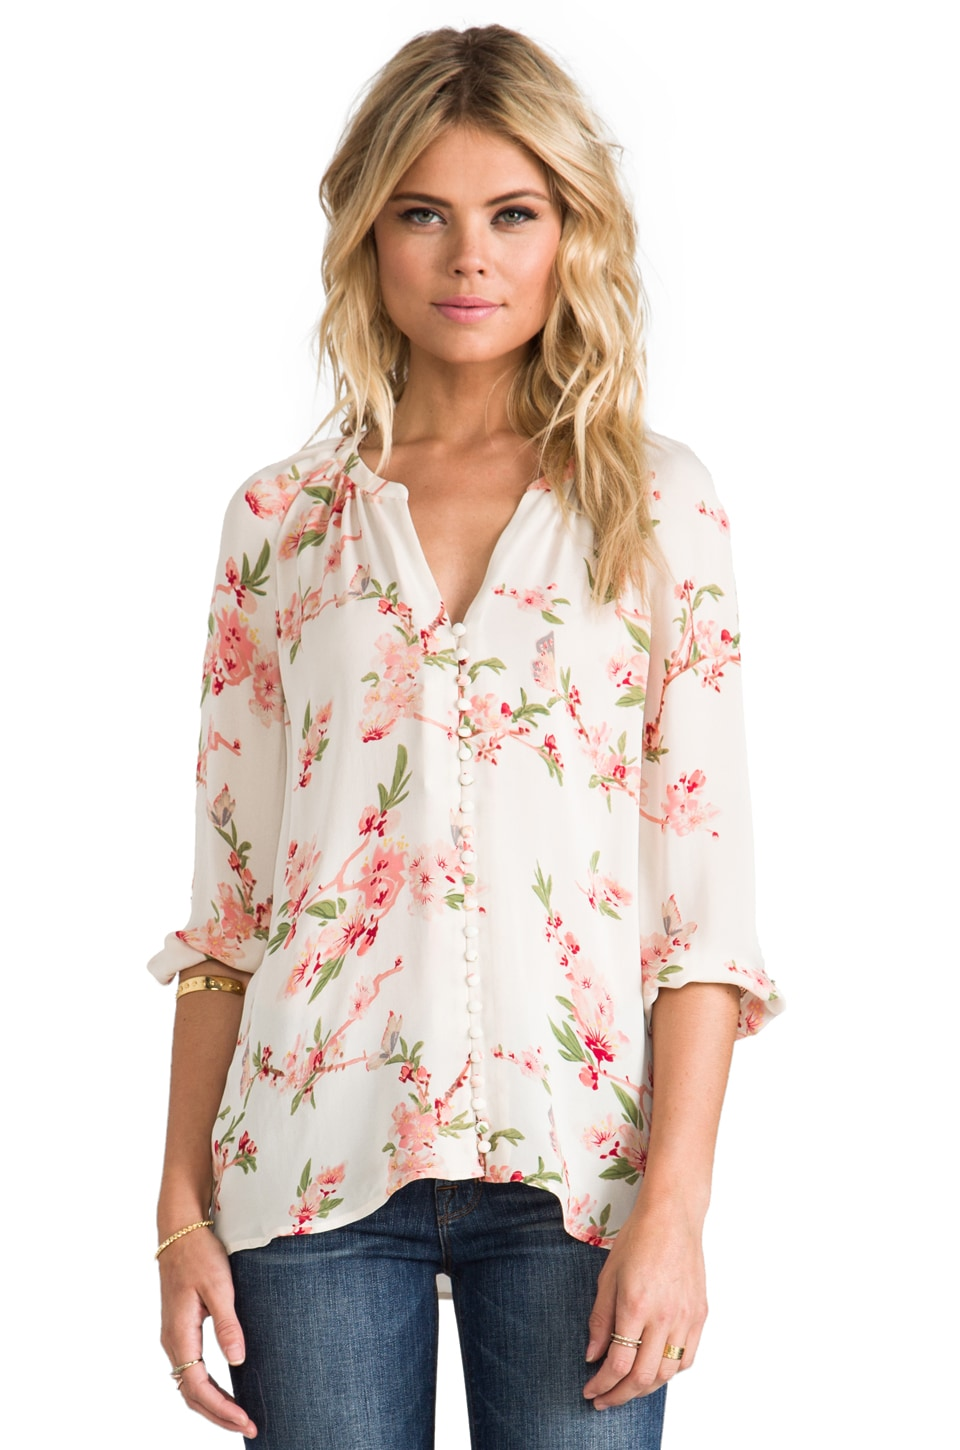 Joie Kade b Blouse in Cherry Blossom